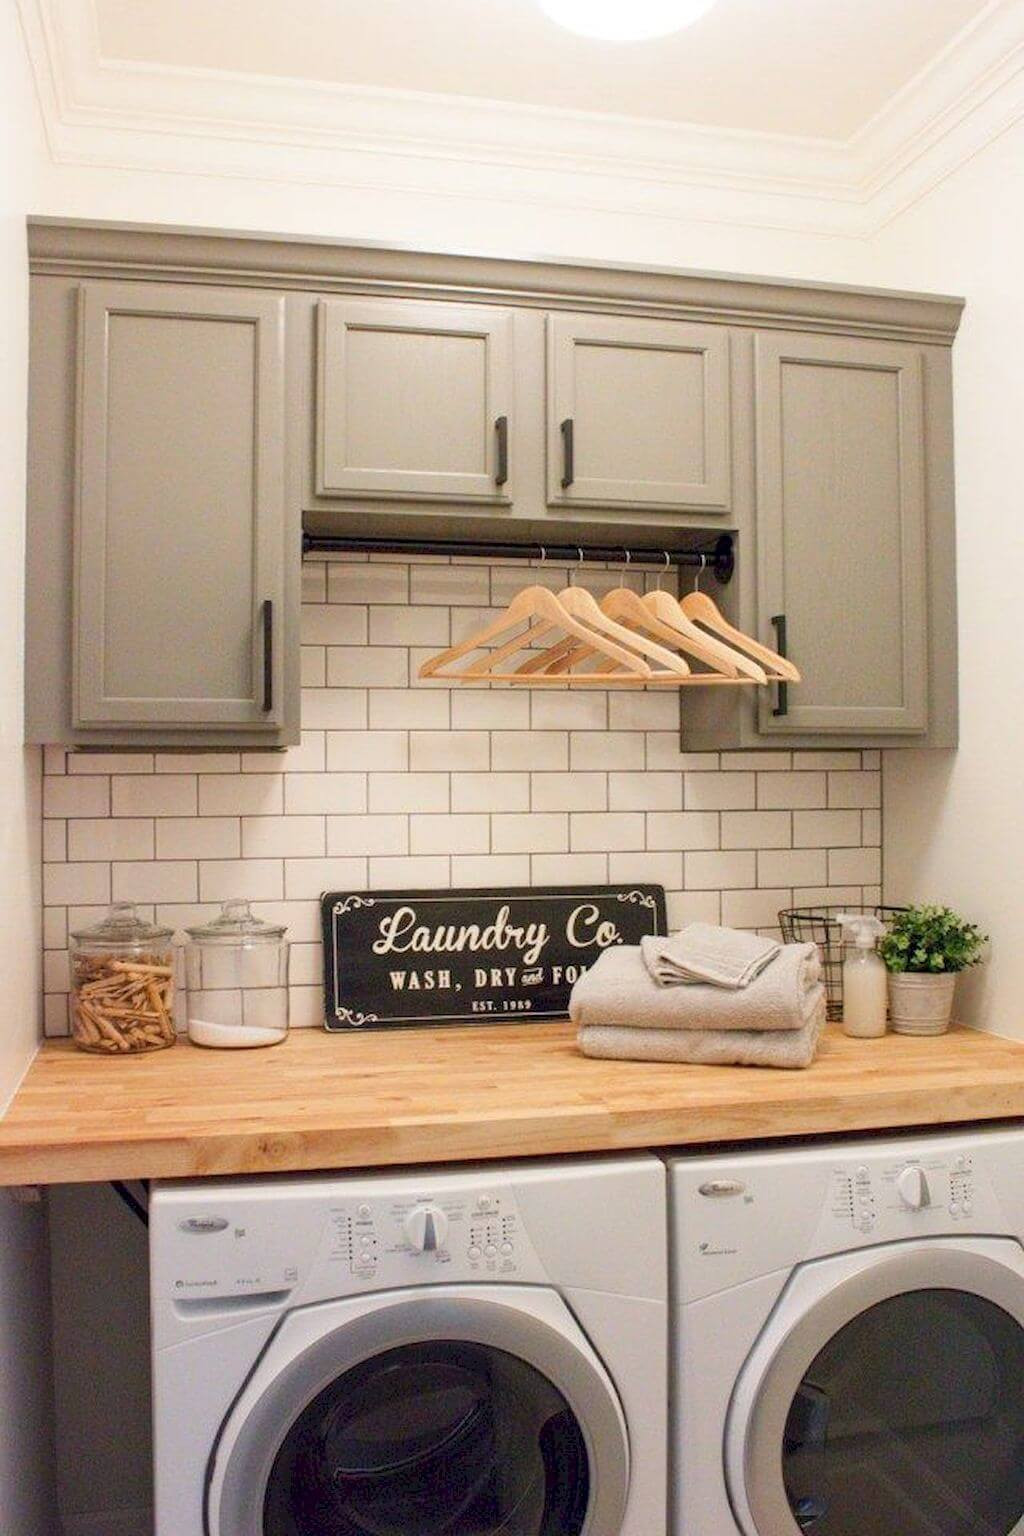 Best ideas about Laundry Room Accessories . Save or Pin 34 Best Farmhouse Laundry Room Decor Ideas and Designs for Now.